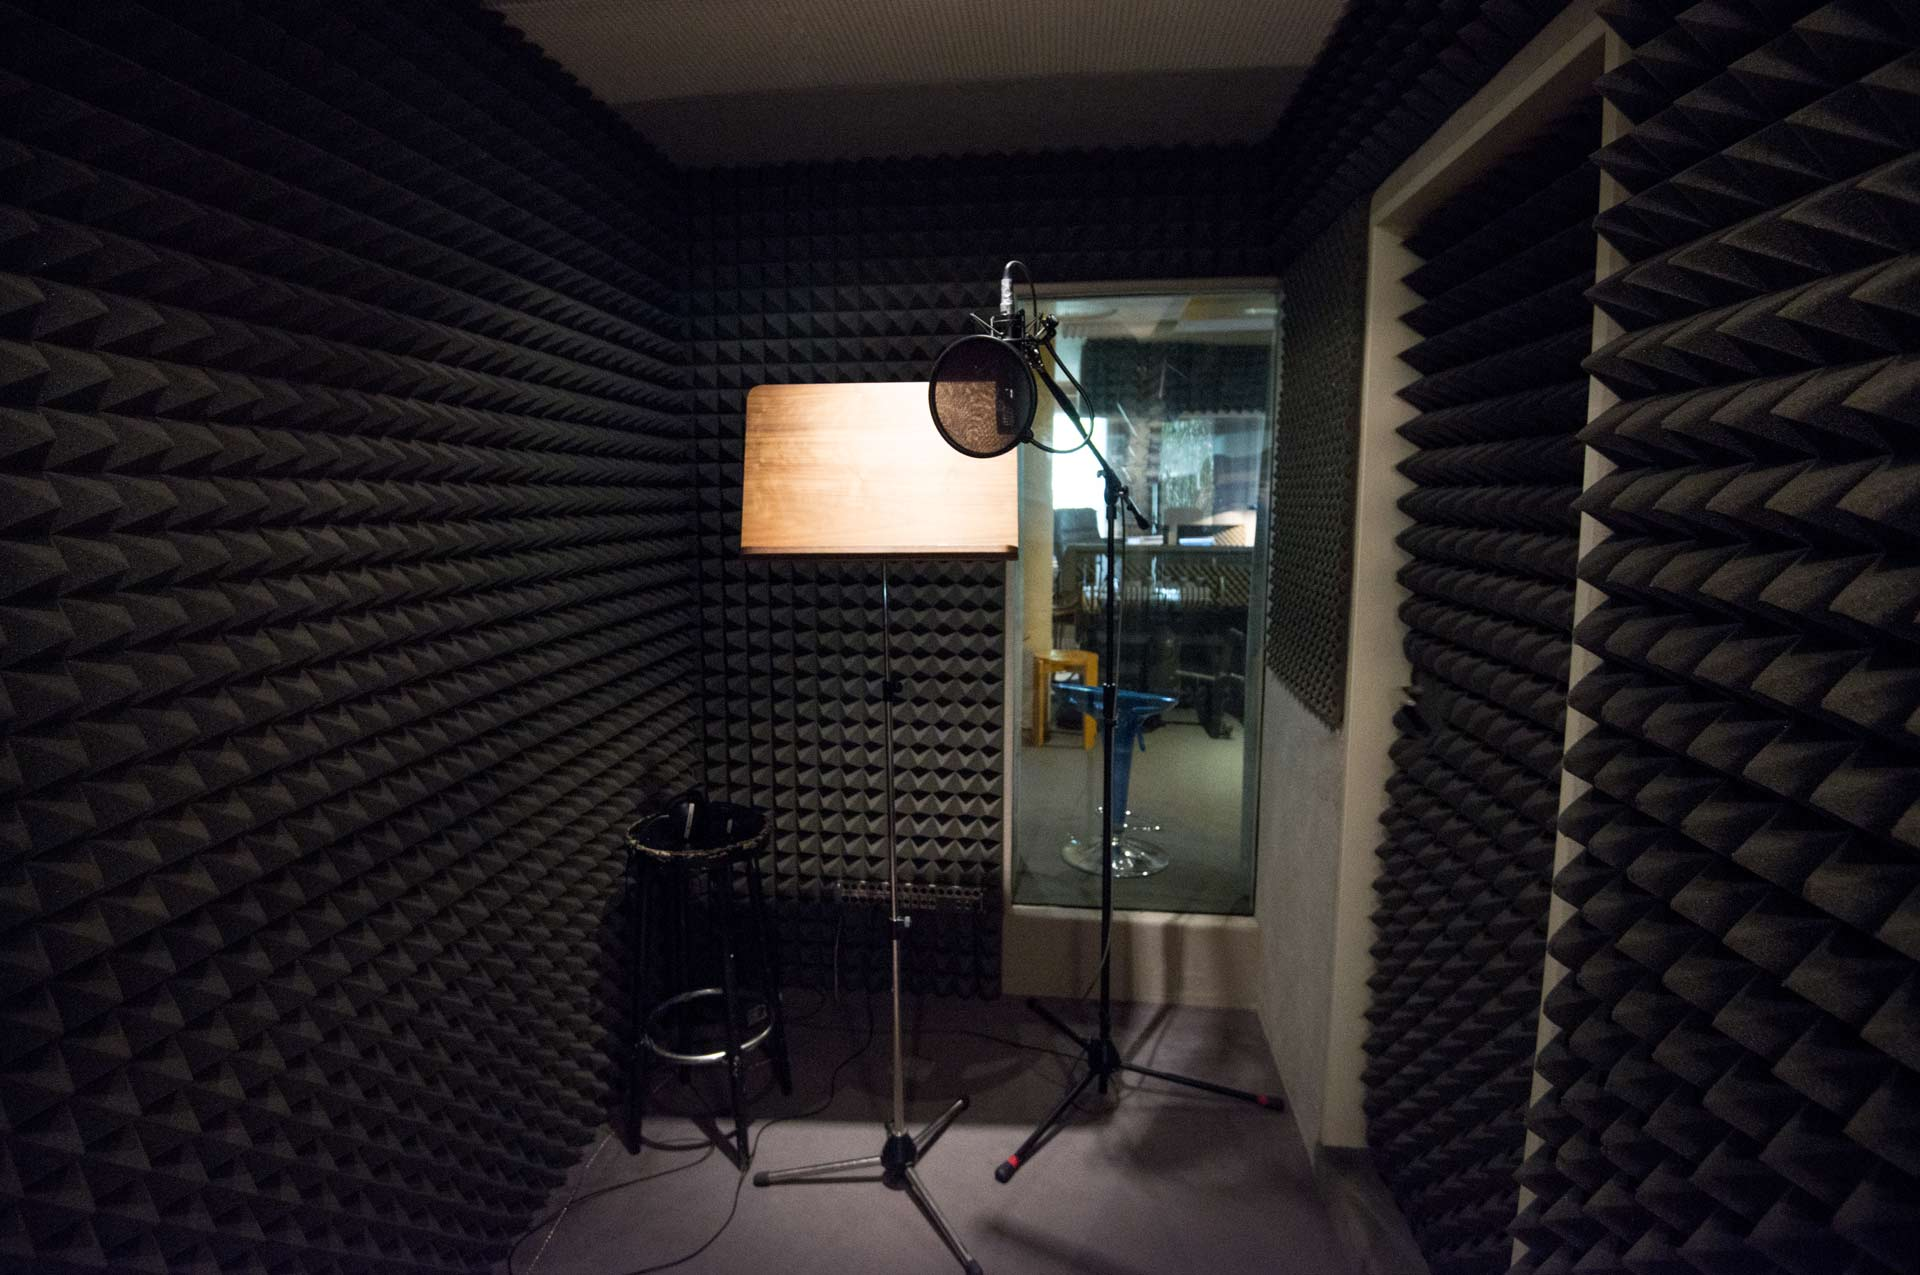 Vocal chamber for recording